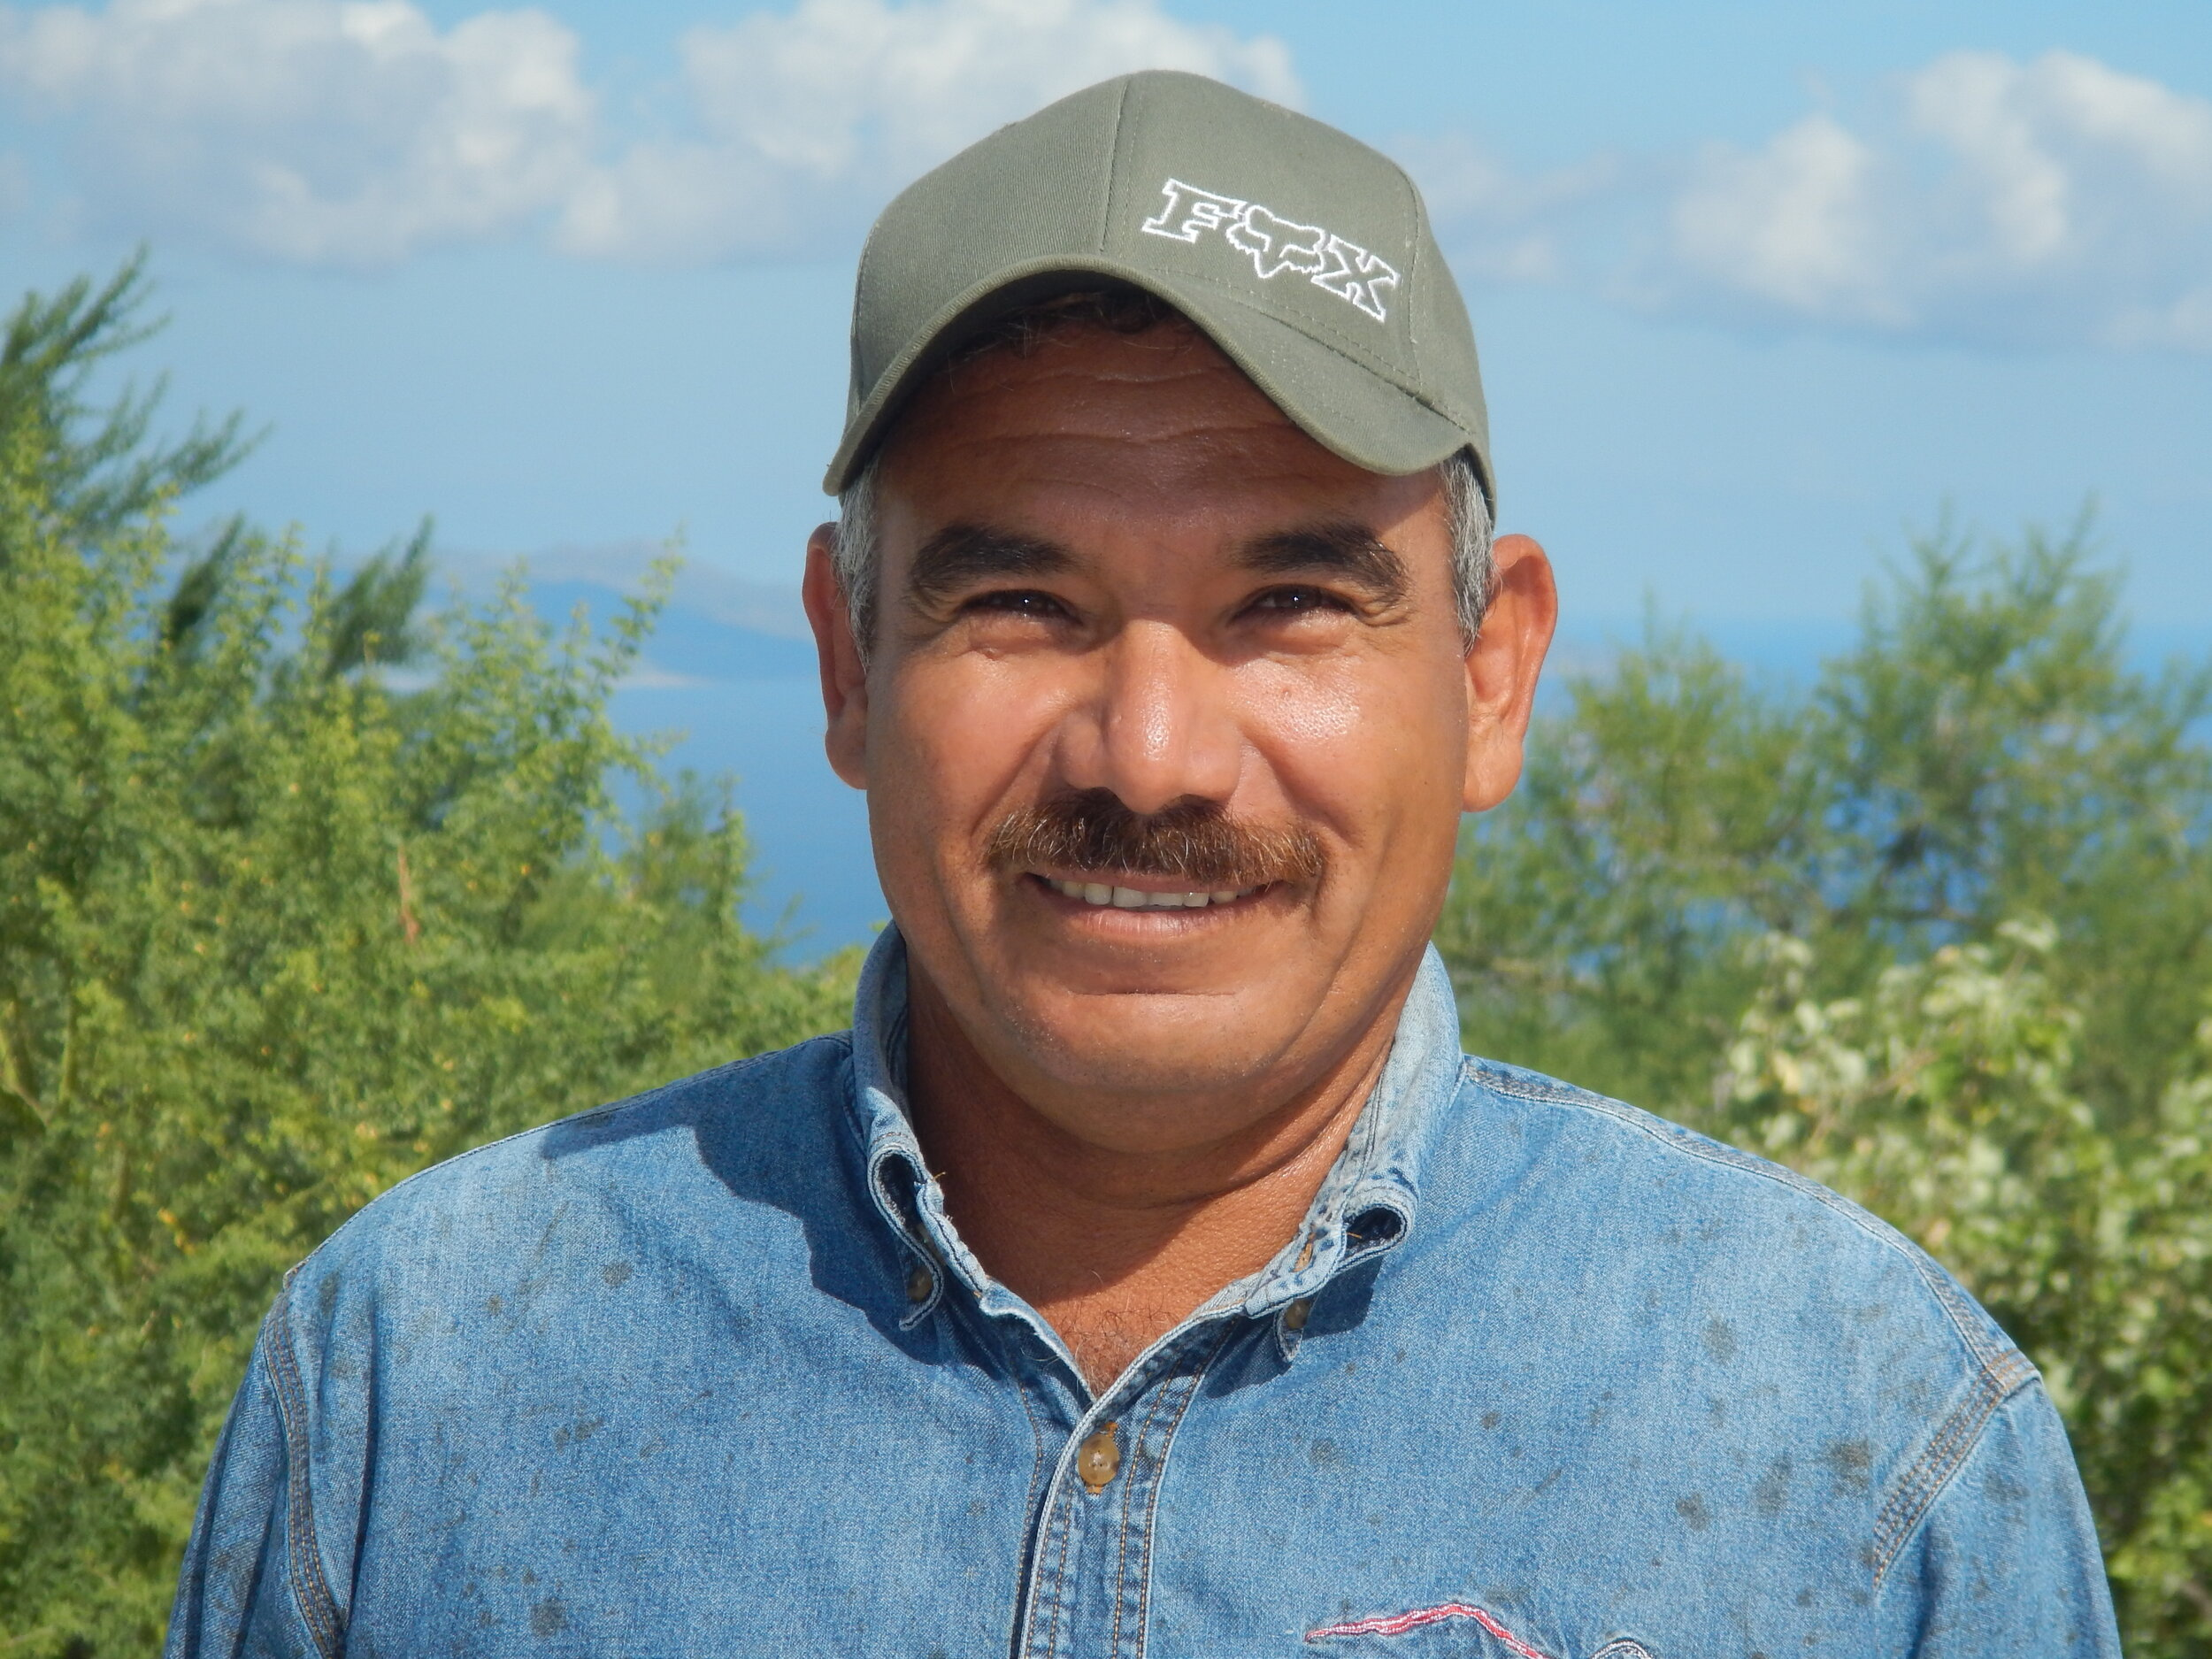 Octavio Rosas - Crew Supervisor   Octavio has ample experience that has made him one of the lead trail designers in charge of the trail development on the ranch. His leadership on the field is noticeable, supporting his team members into constricting the very best of the trails.